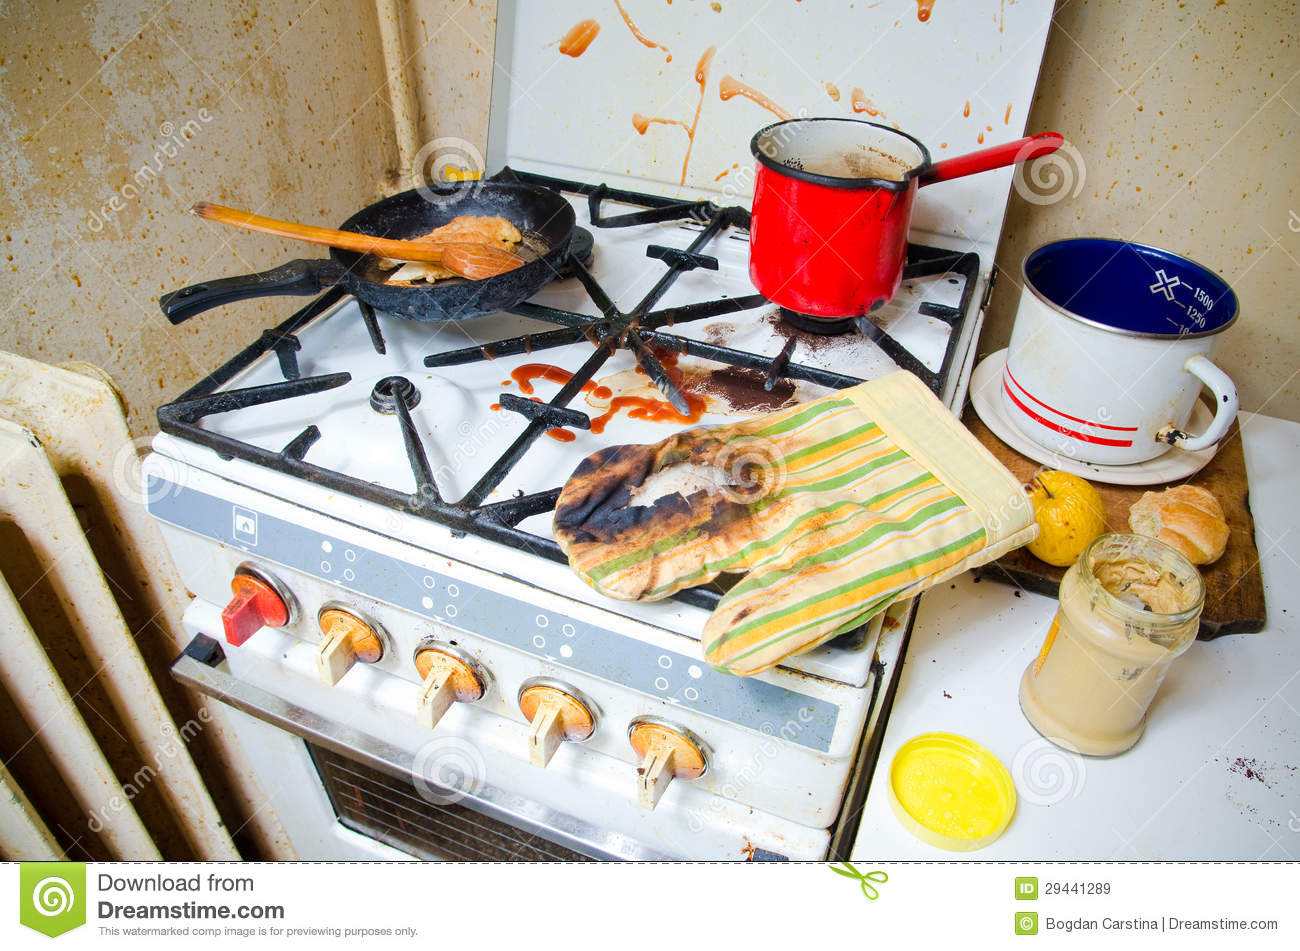 Dirty Kitchen Stove Stock Photos, Images, & Pictures - 922 Images